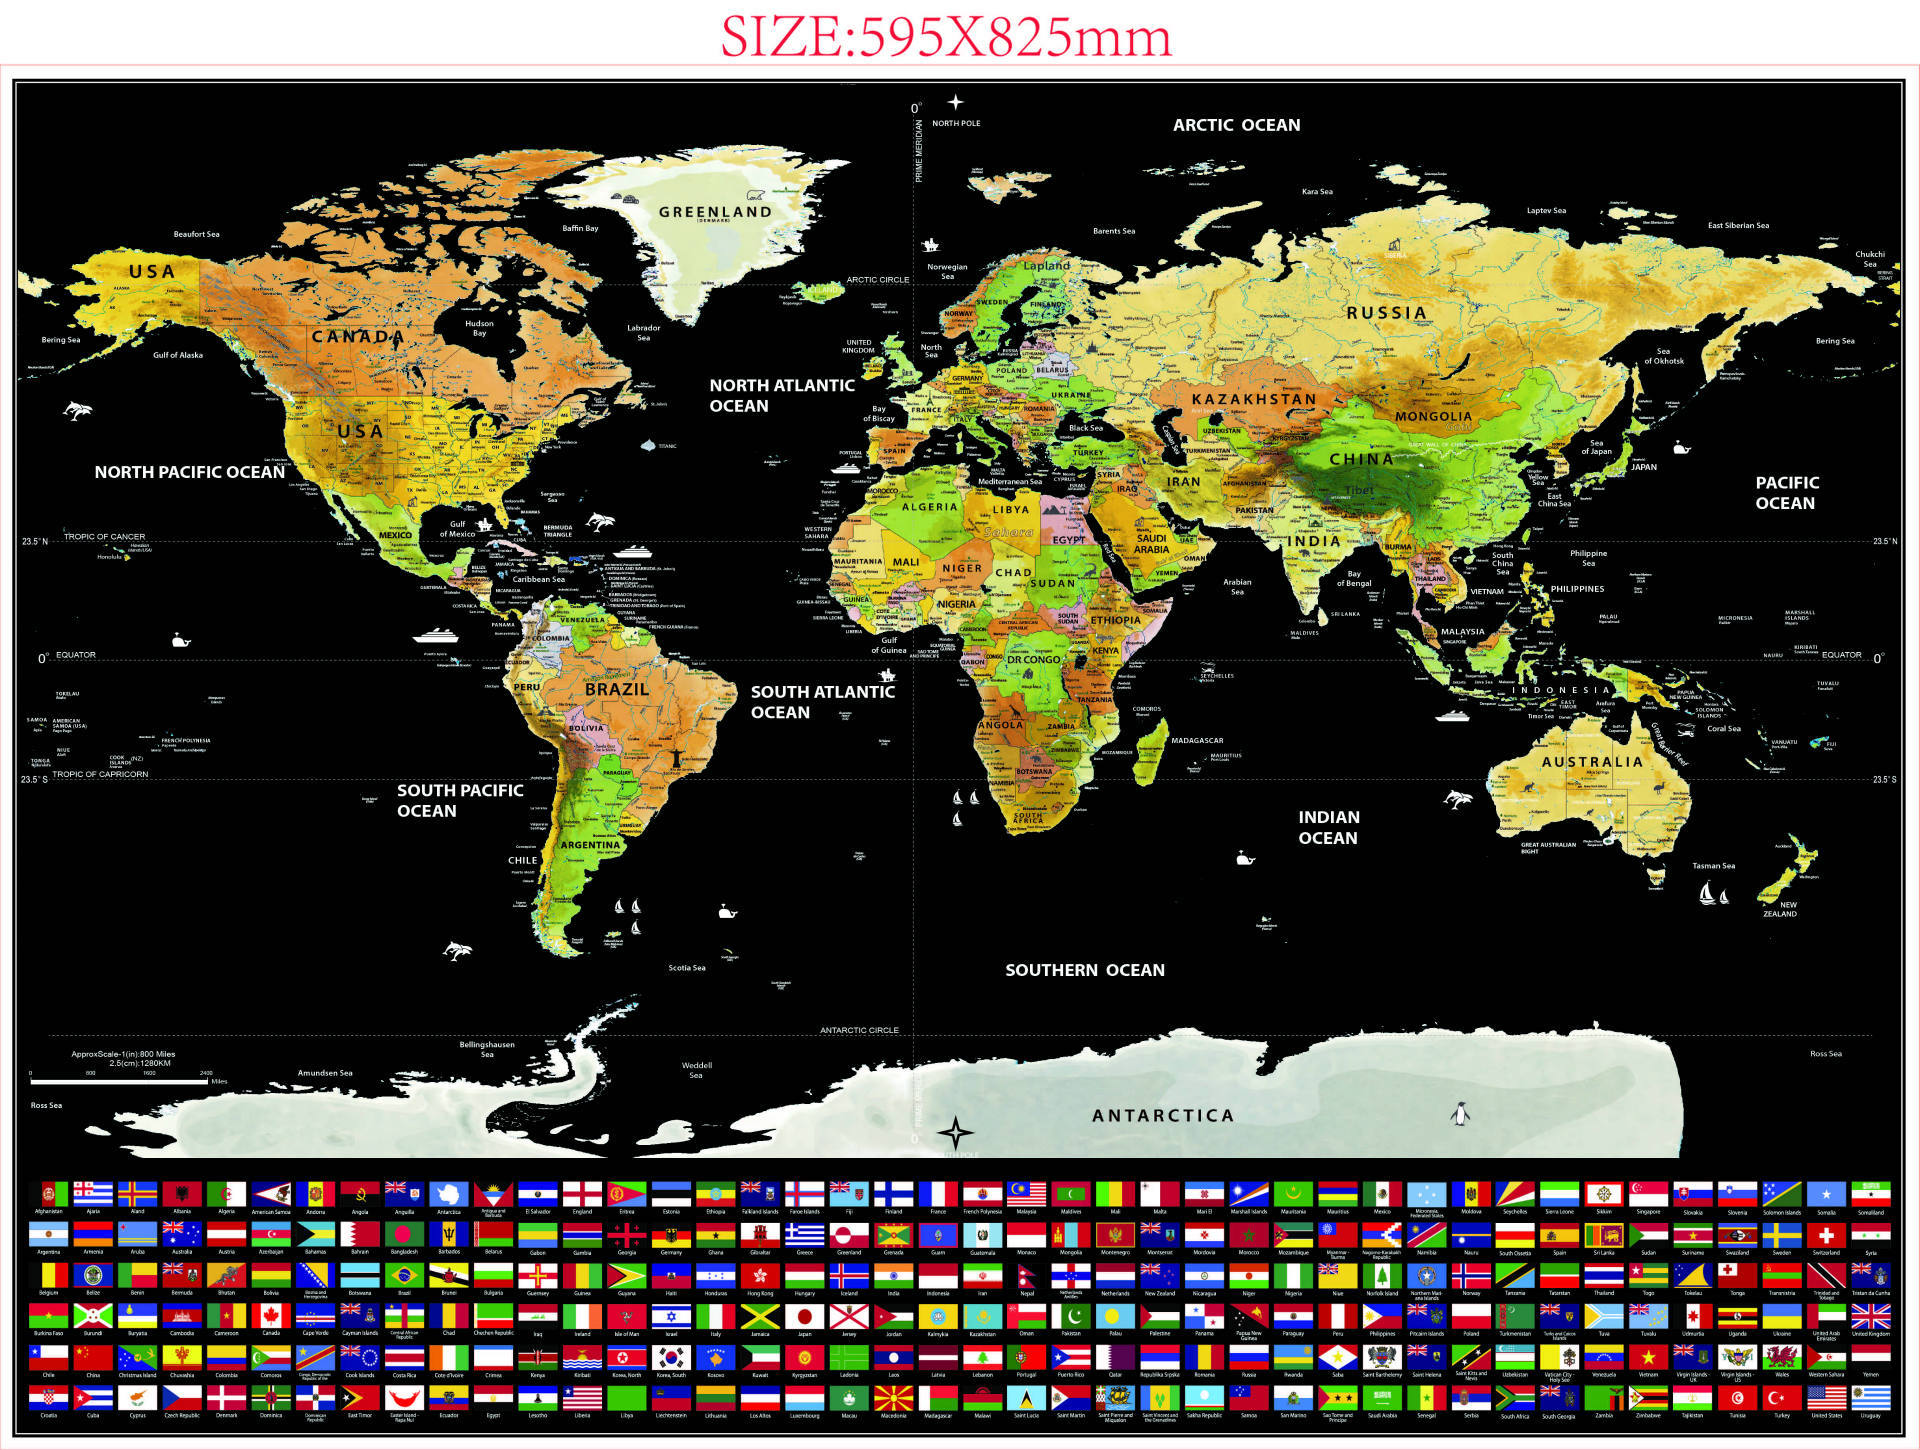 US $8.52 |Scratch Map Of The World Travel Edition Deluxe Scratch Off on key club posters, tear off posters, peel off posters, kick off posters, dance off posters,